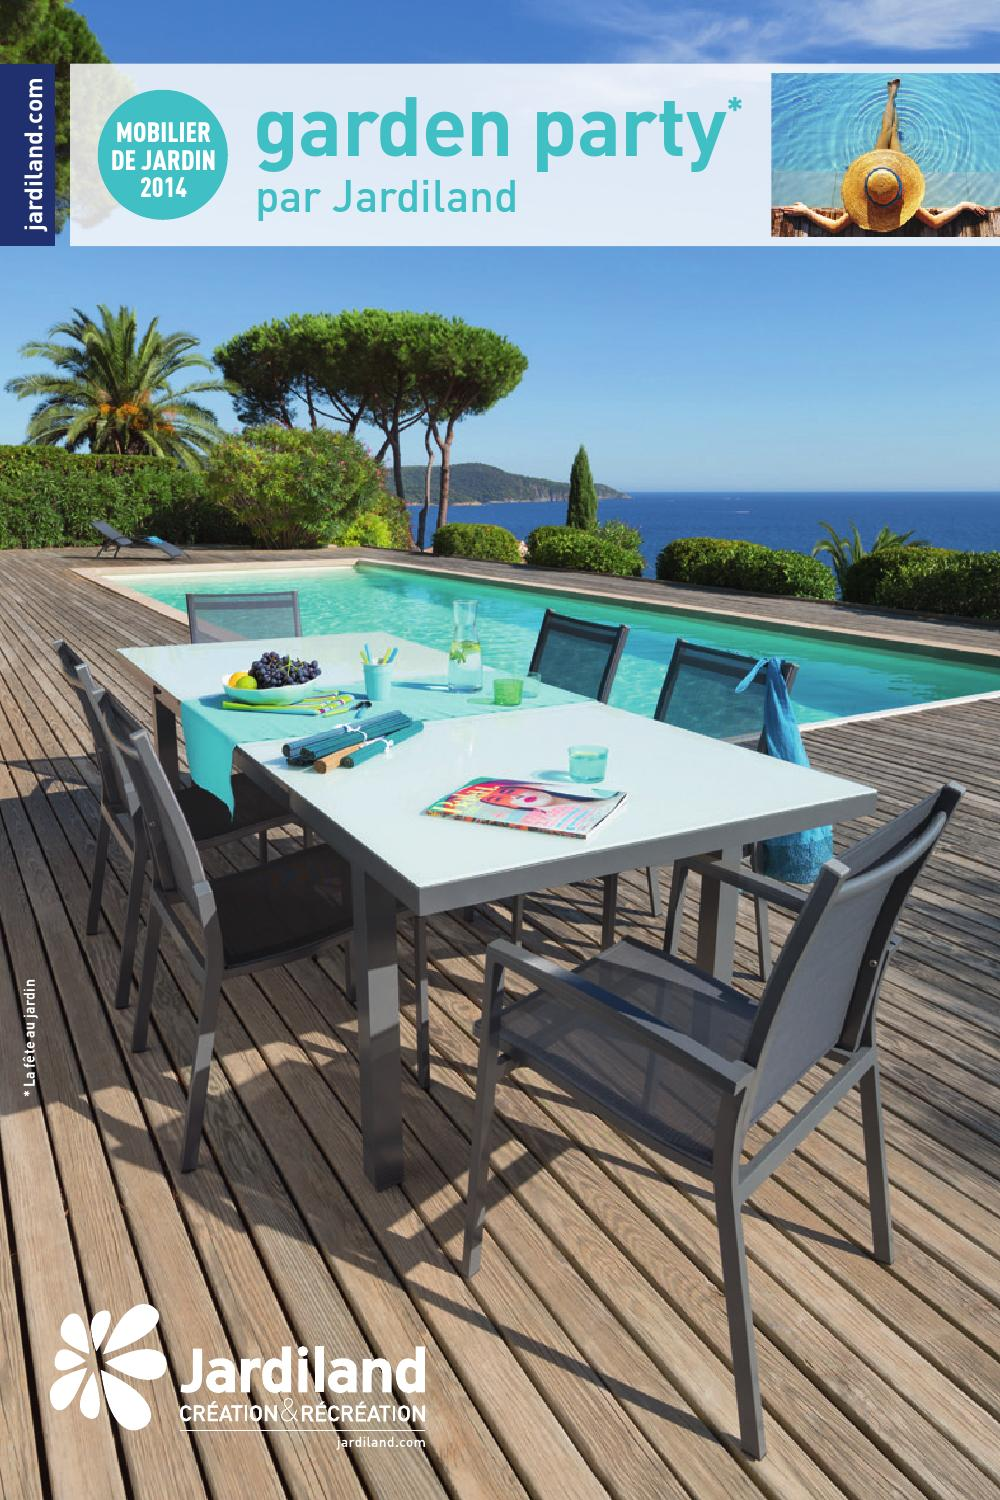 Catalogue jardiland mobilier de jardin 2014 by joe monroe issuu - Table de jardin aluminium jardiland ...